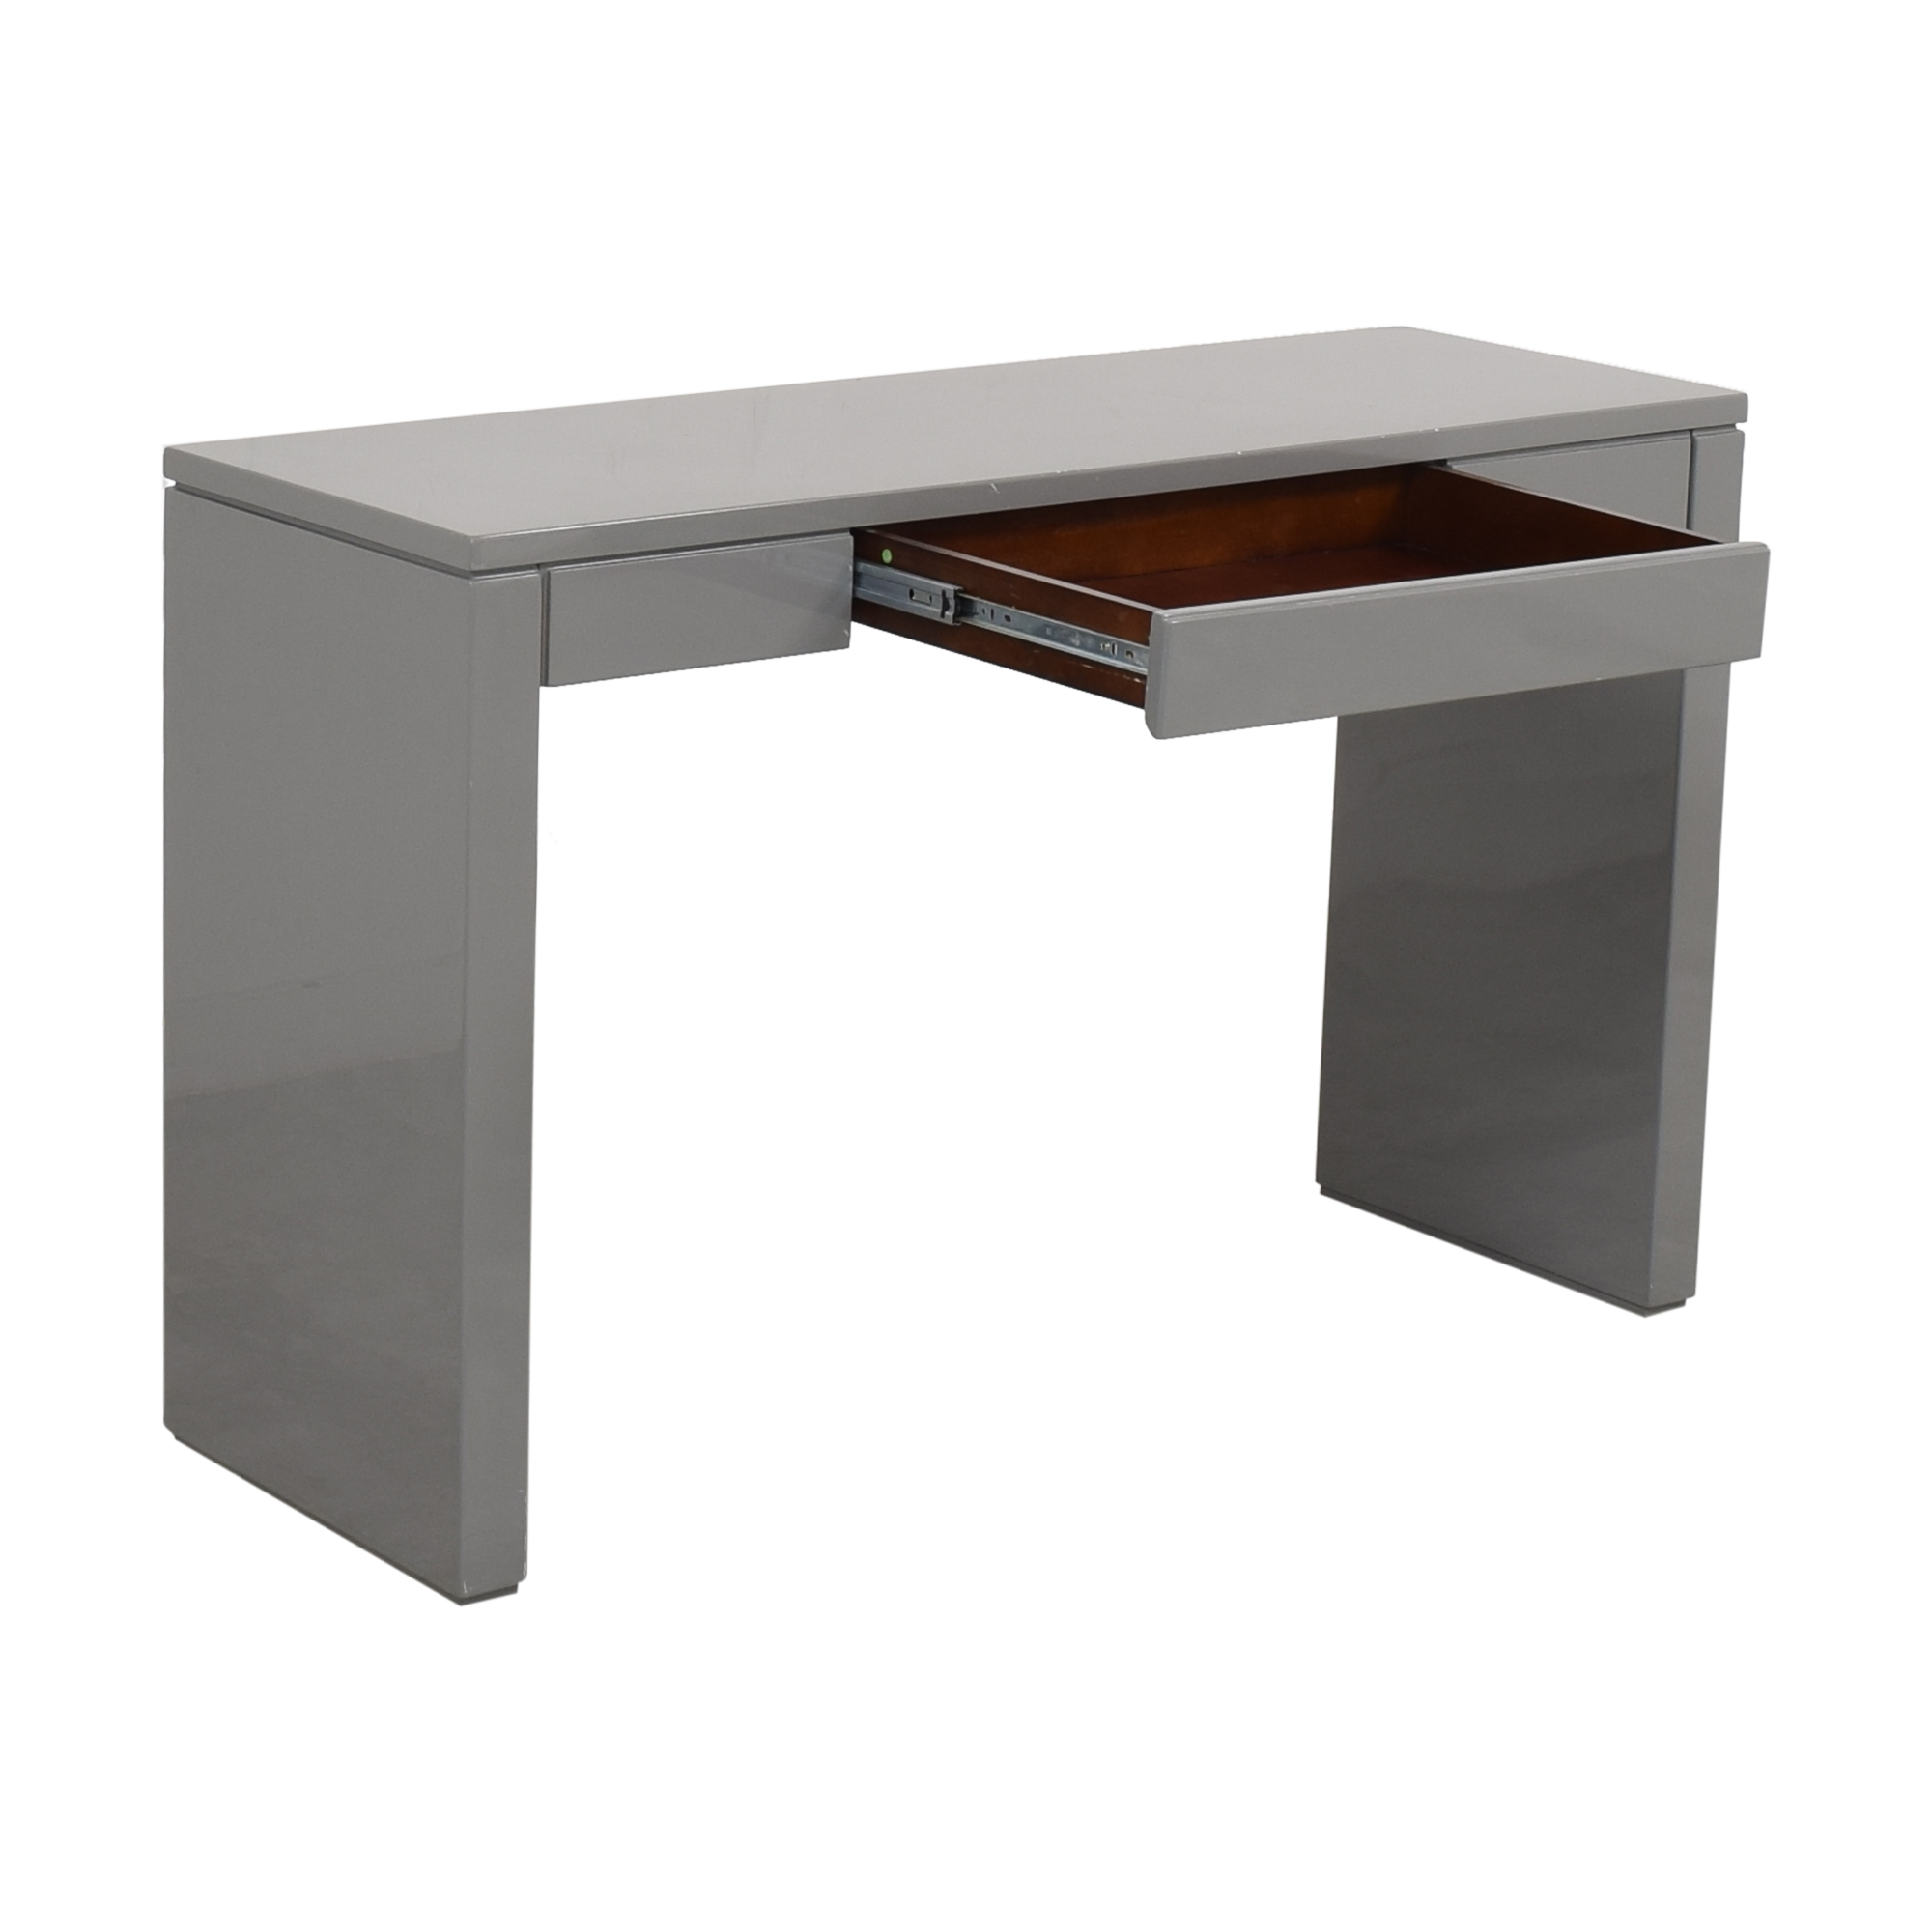 Bungalow 5 Bungalow 5 Odom Console Table grey